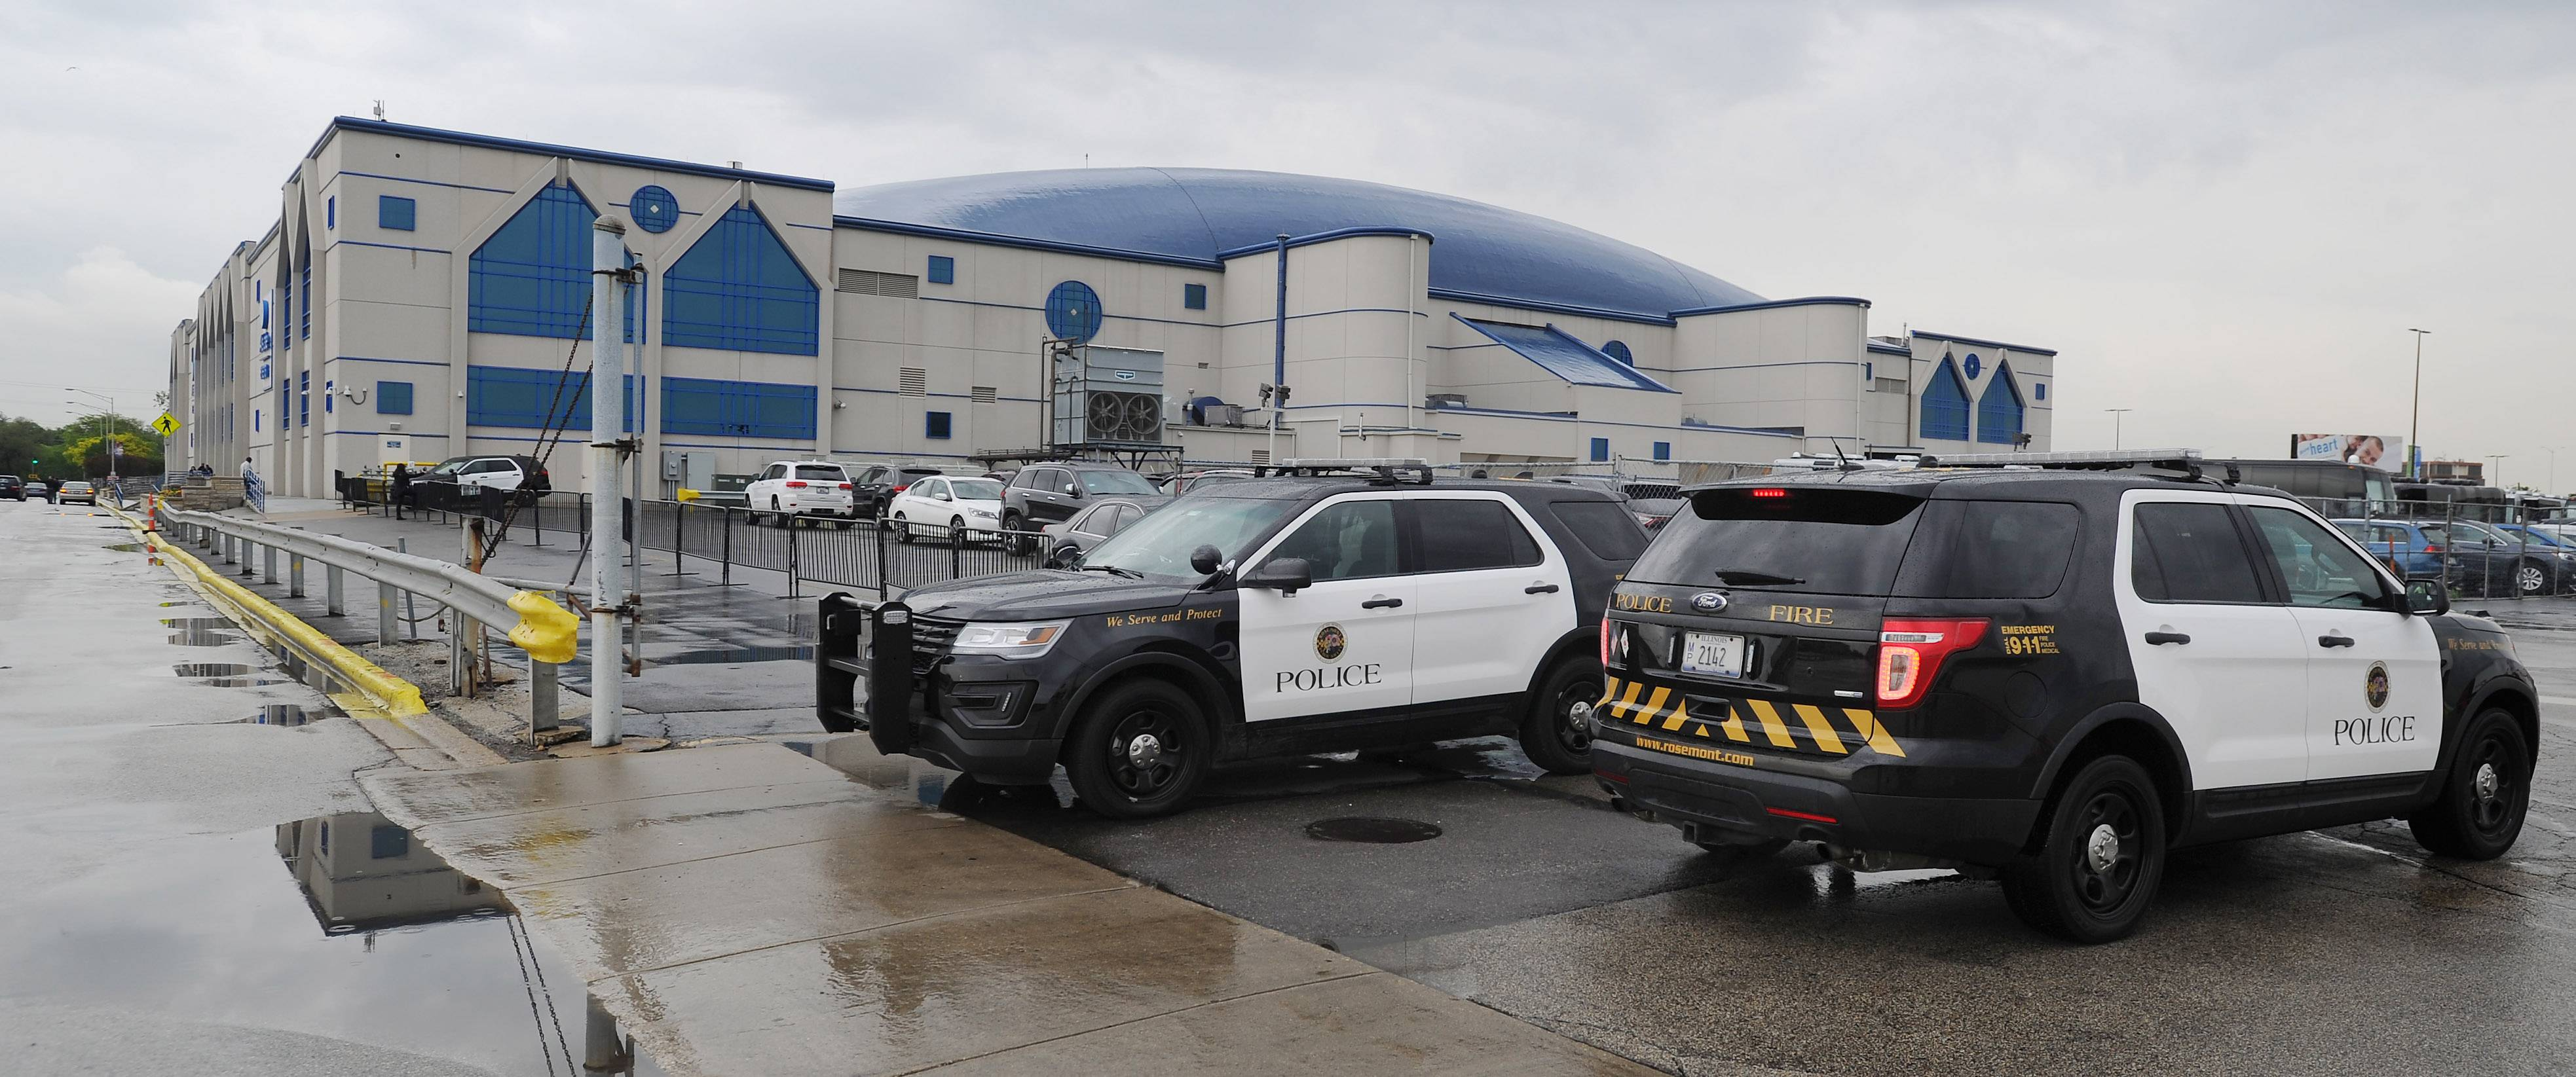 Security was tight with police cars at all the major entrances at the Allstate Arena in Rosemont for Tuesday's concert by The Weeknd.